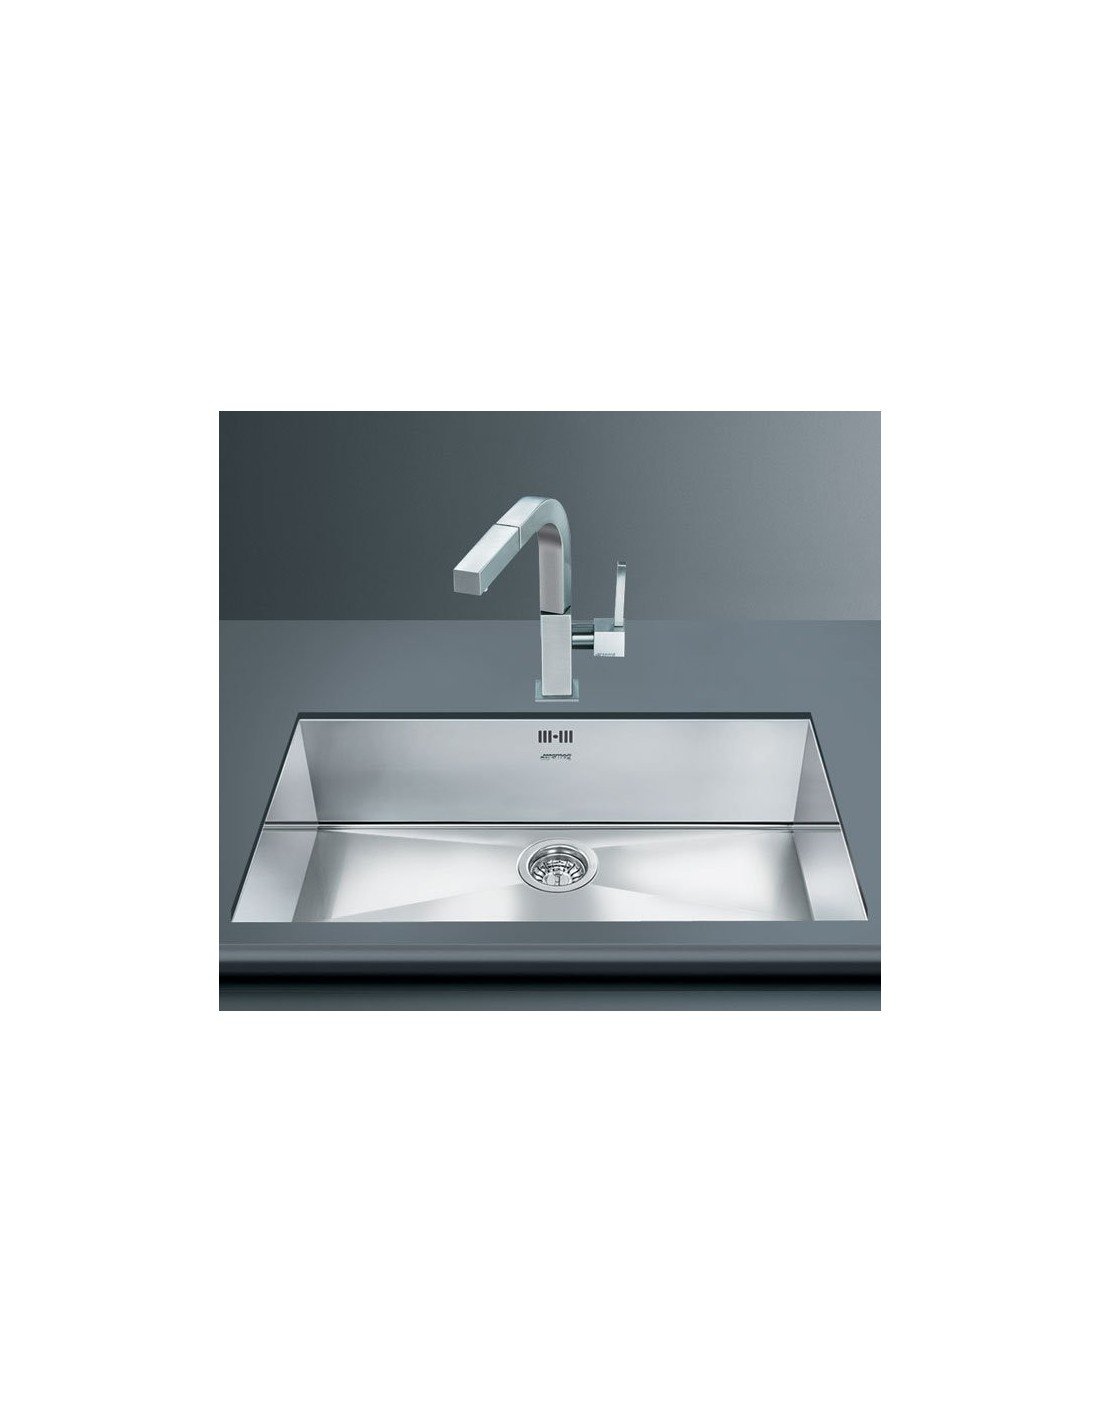 Smeg Kitchen Sinks - East Coast Kitchens